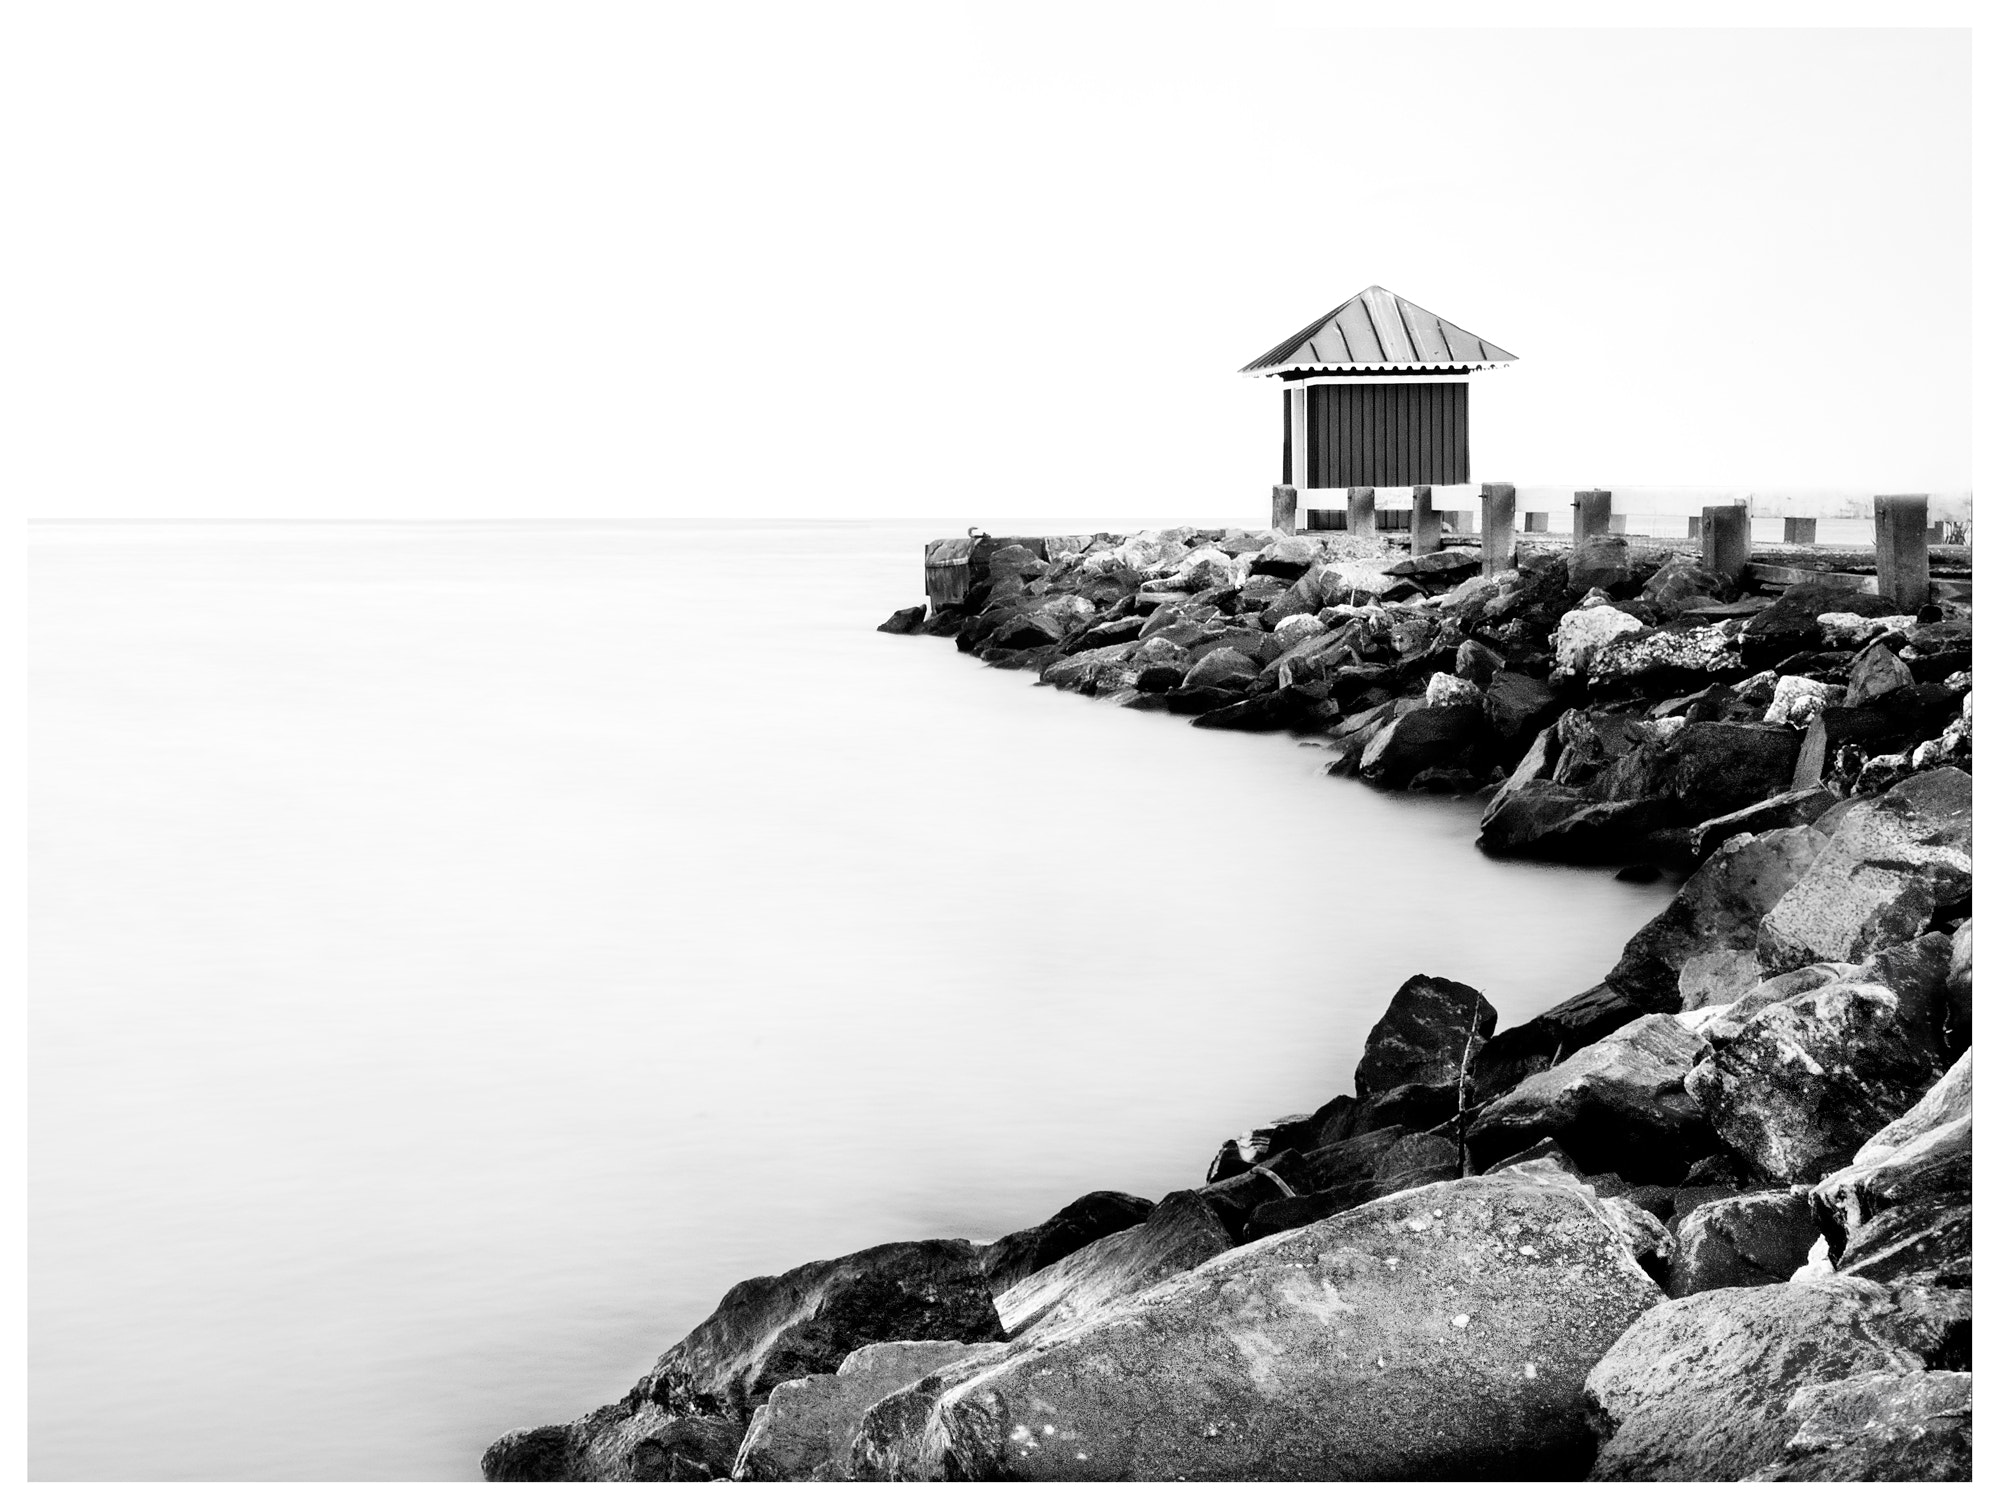 Photograph The Boatstop by Mikael Sundberg on 500px